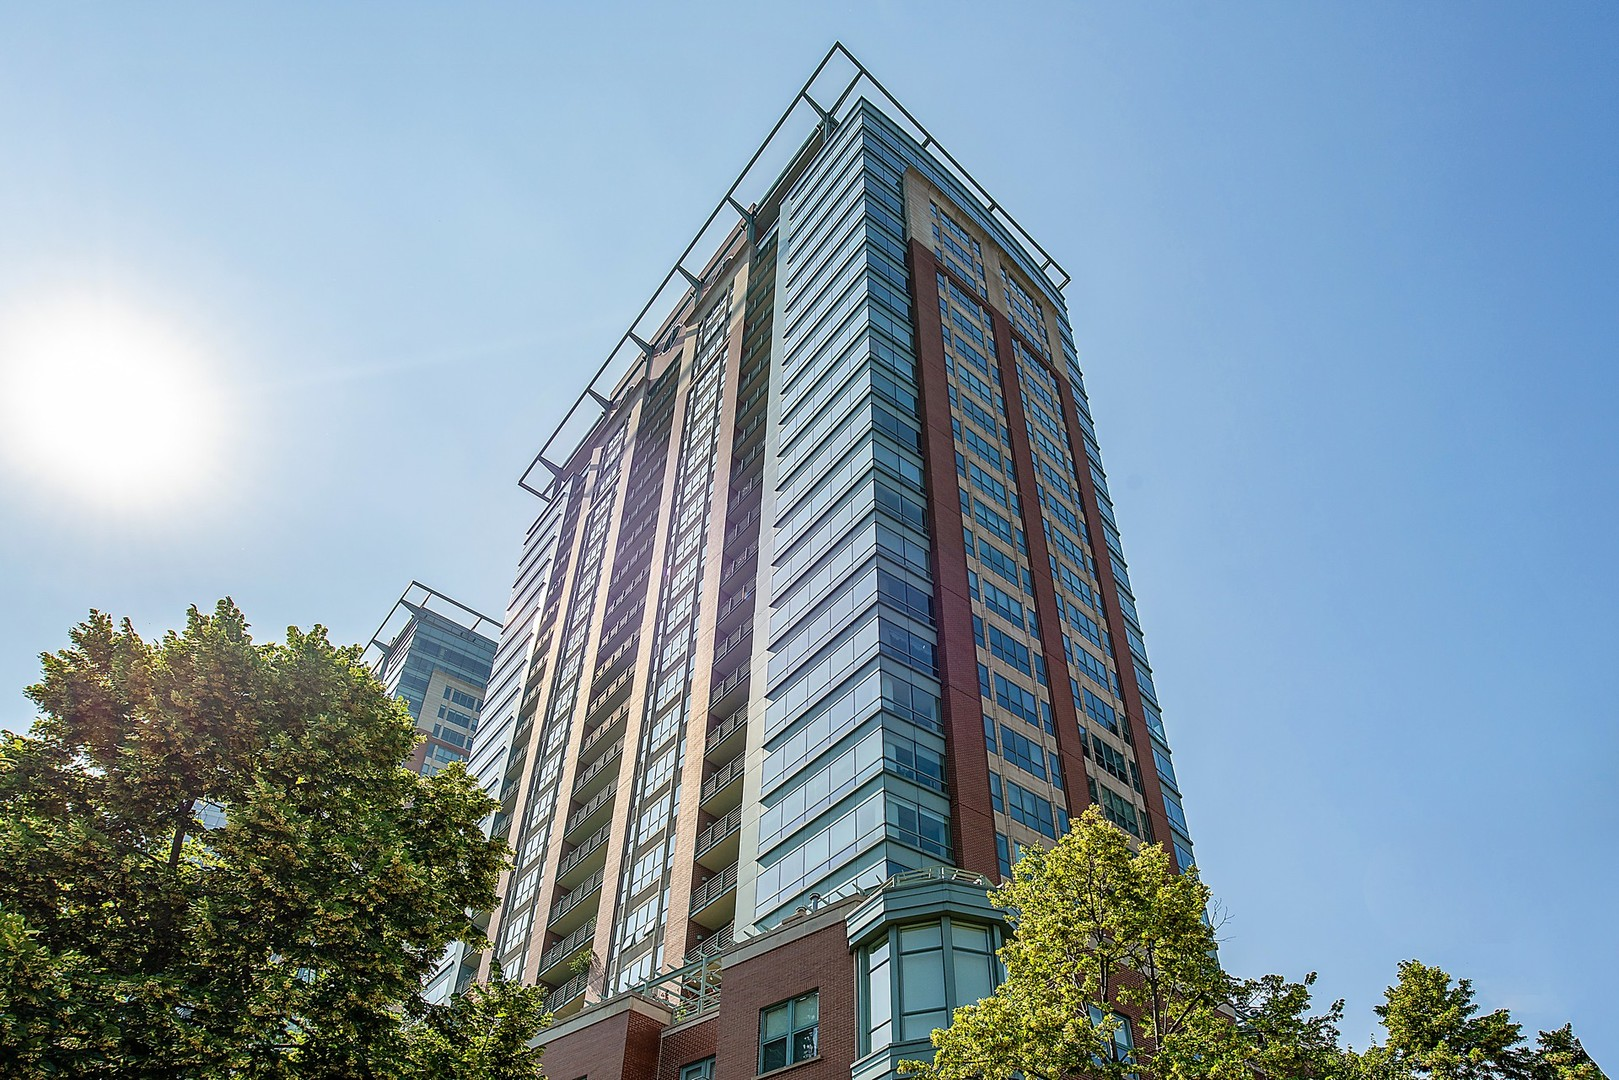 Photo for 445 E North Water Street, Unit Number 1802, CHICAGO, IL 60611 (MLS # 10010650)